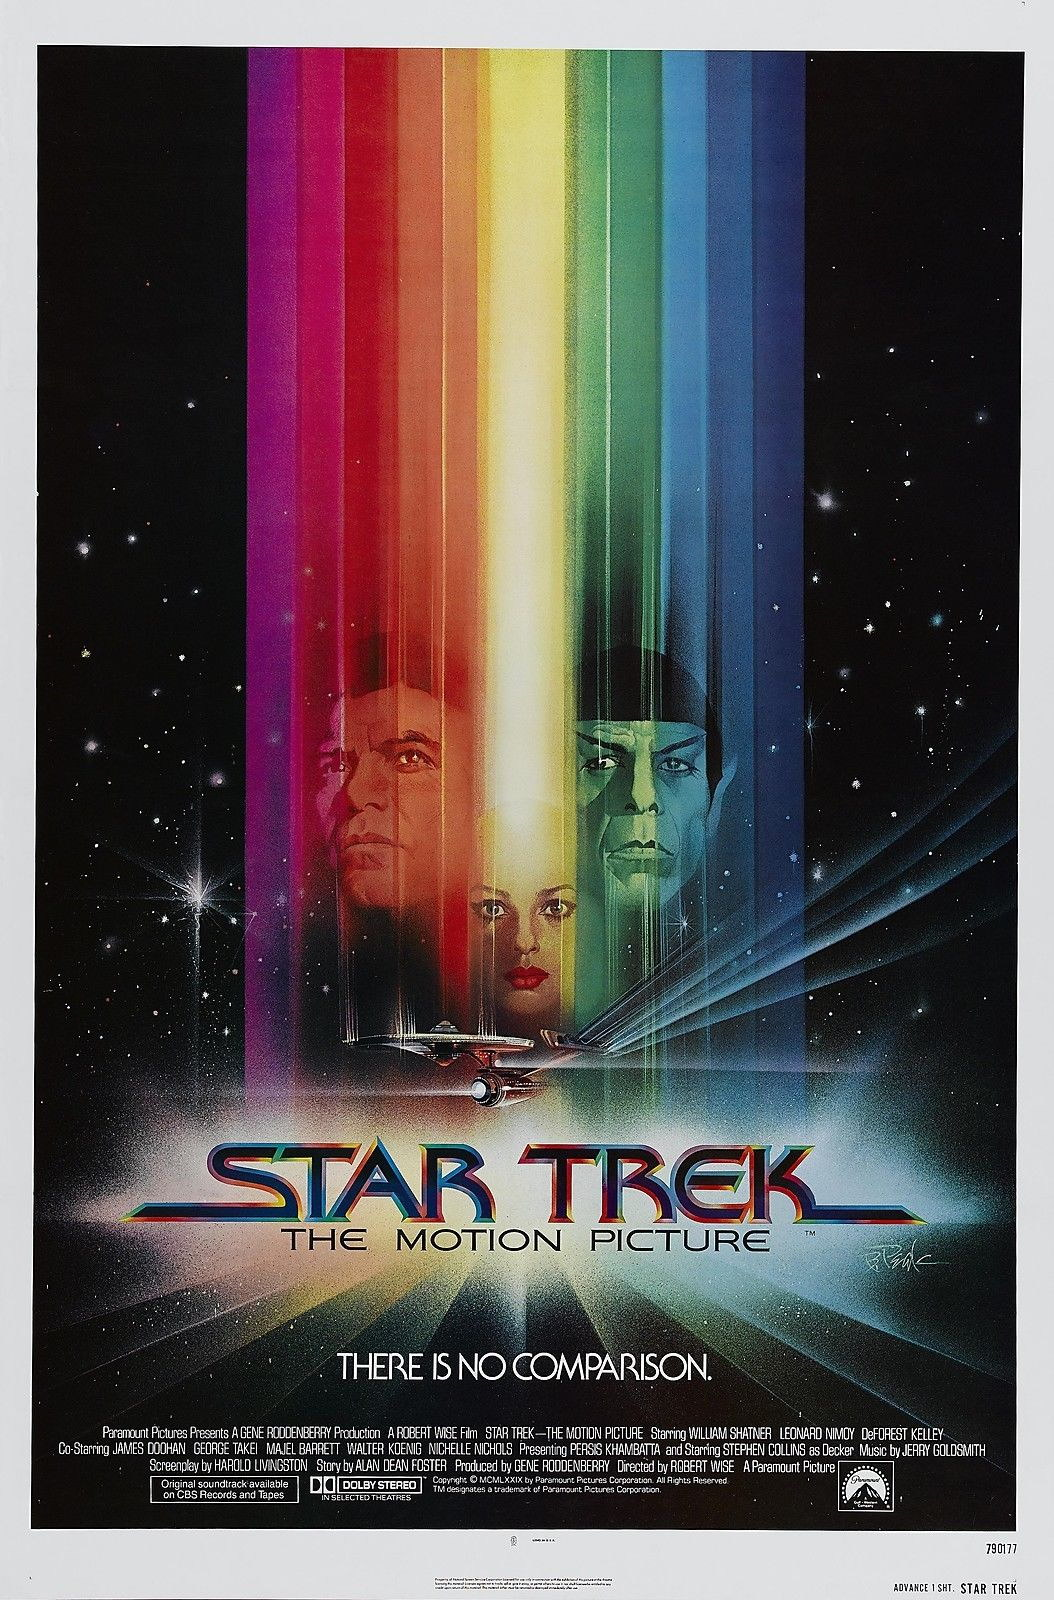 72536-STAR-TREK-THE-MOTION-PICTURE-William-Shatner-Wall-Print-Poster-Affiche